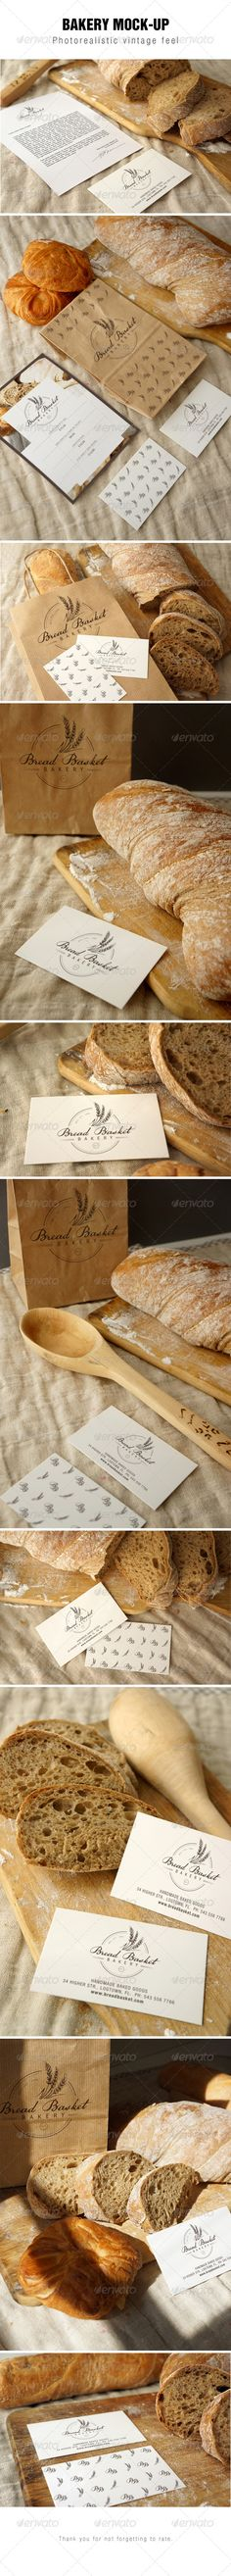 Bakery Branding Mockup #mockup #design Download: http://graphicriver.net/item/bakery-branding-mockup/8475026?ref=ksioks